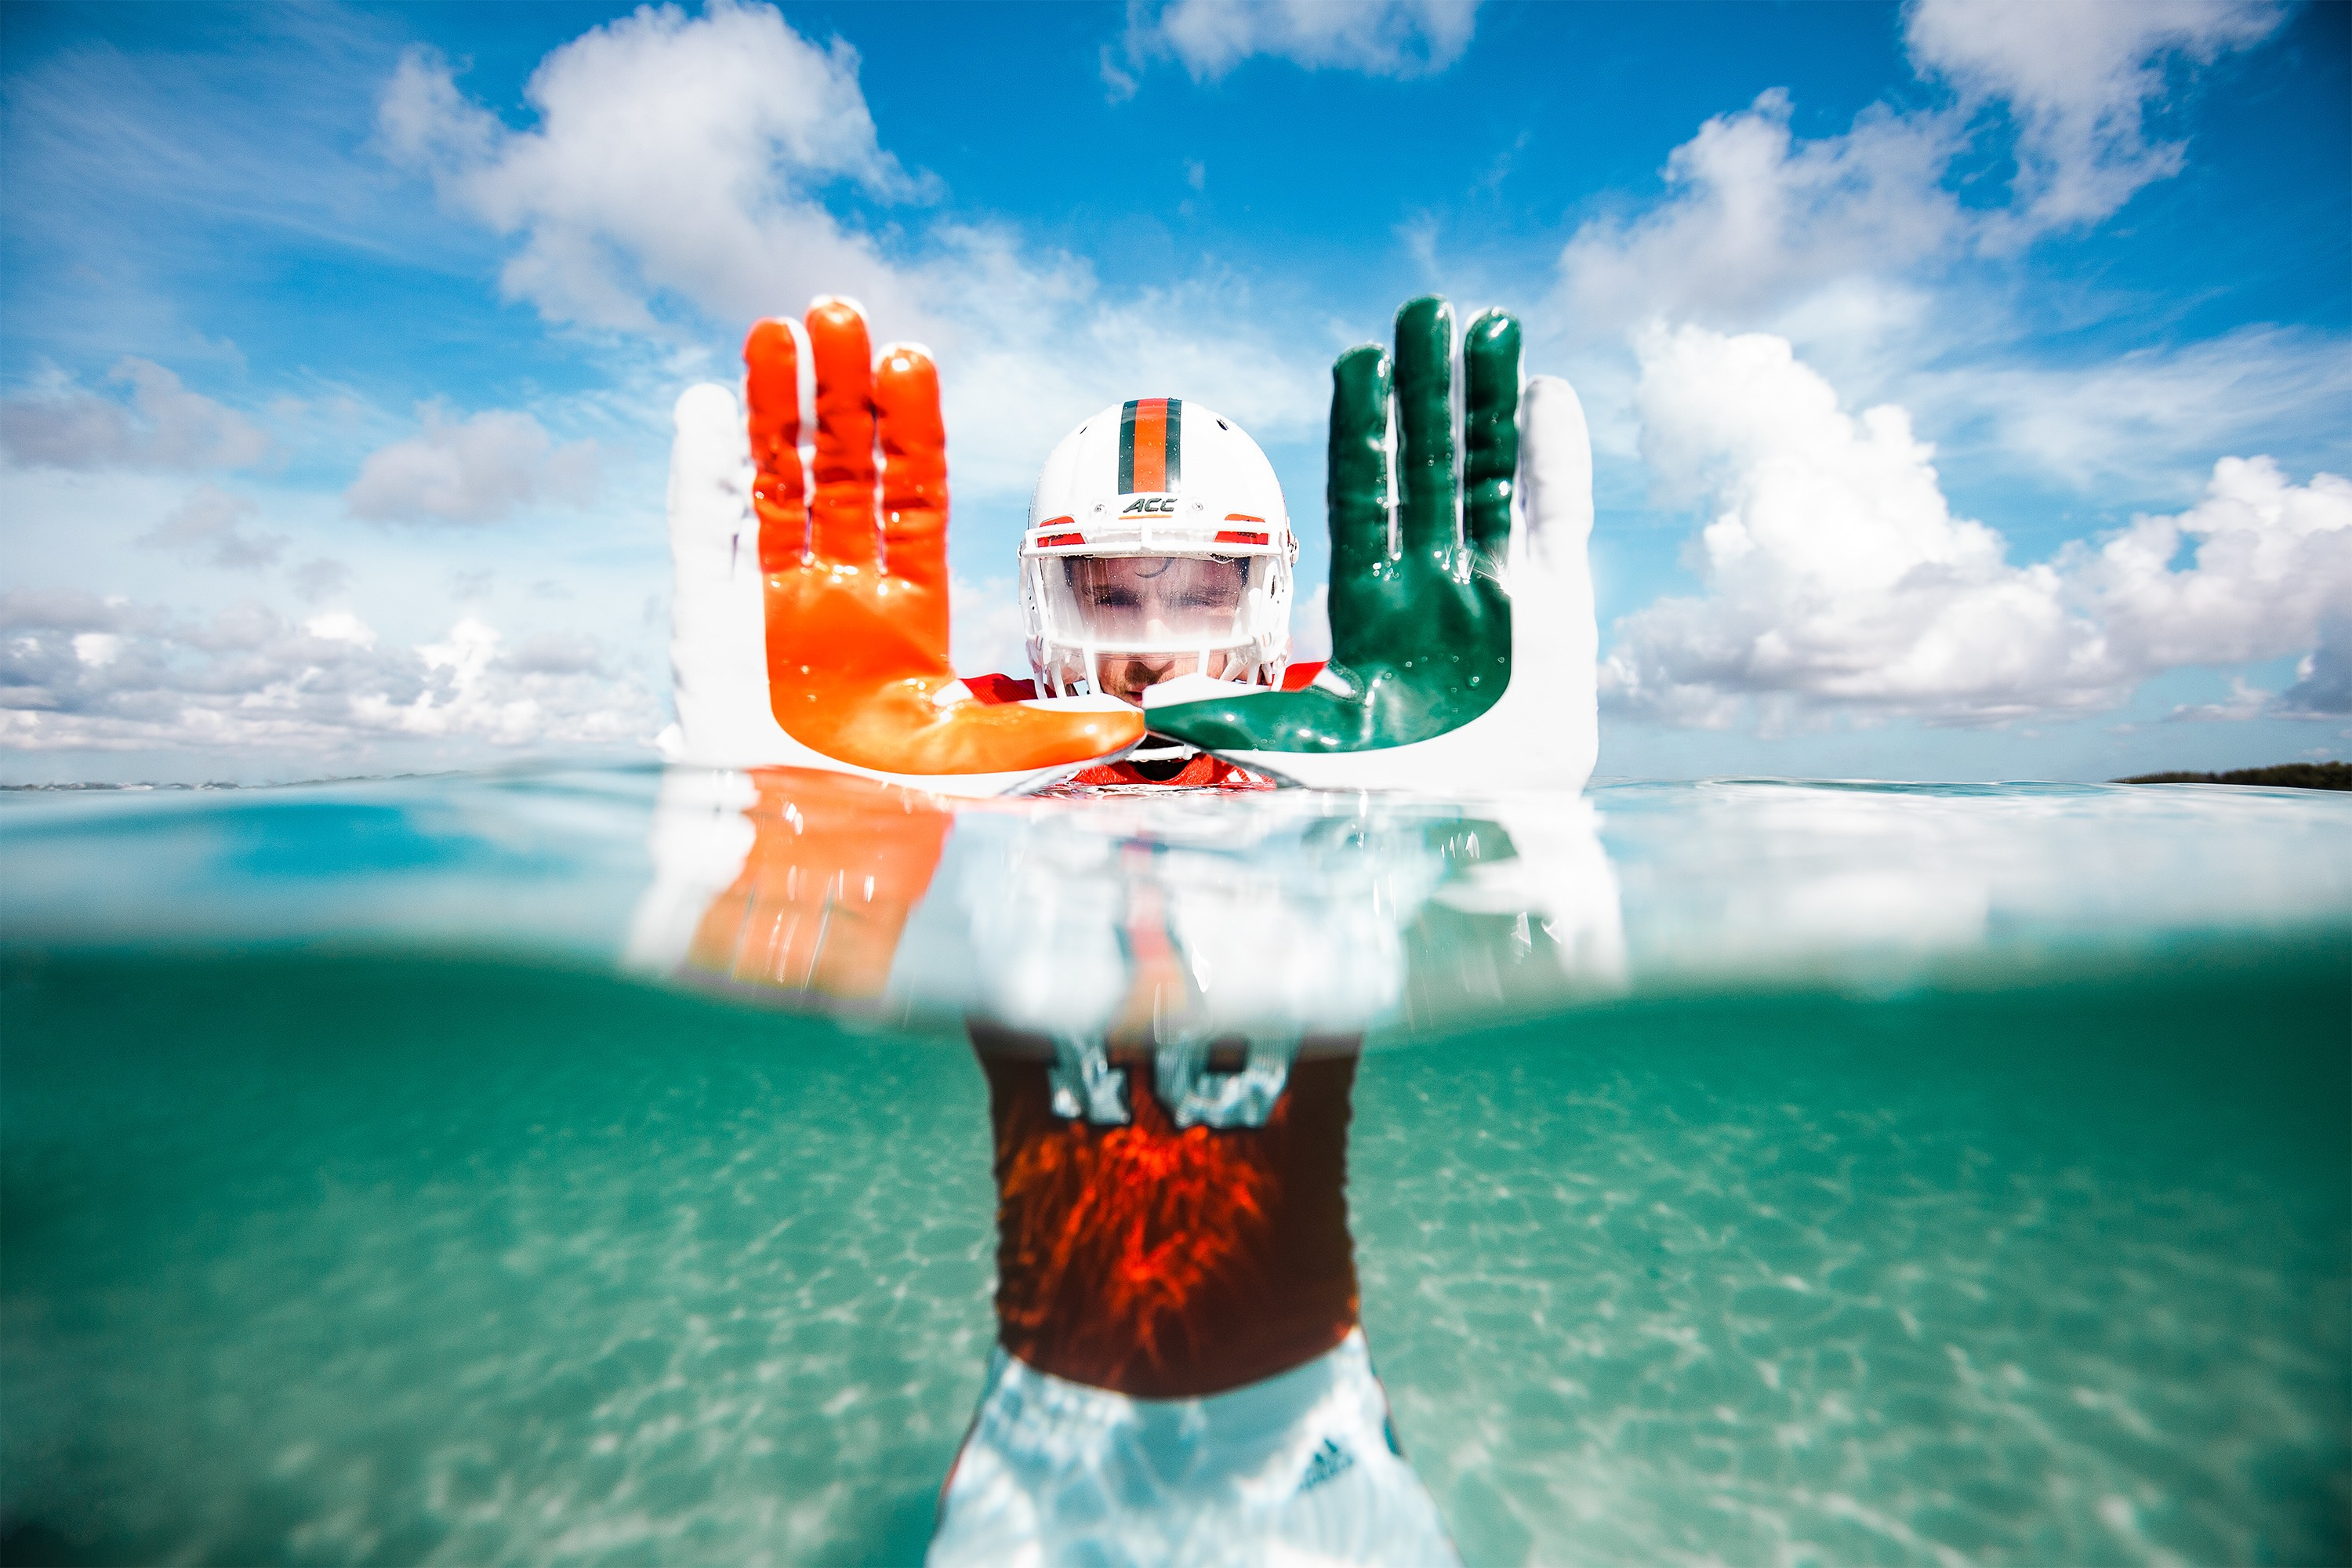 Miami Hurricanes unveil adidas x Parley A1 alternate jerseys for LSU game 62414fb38